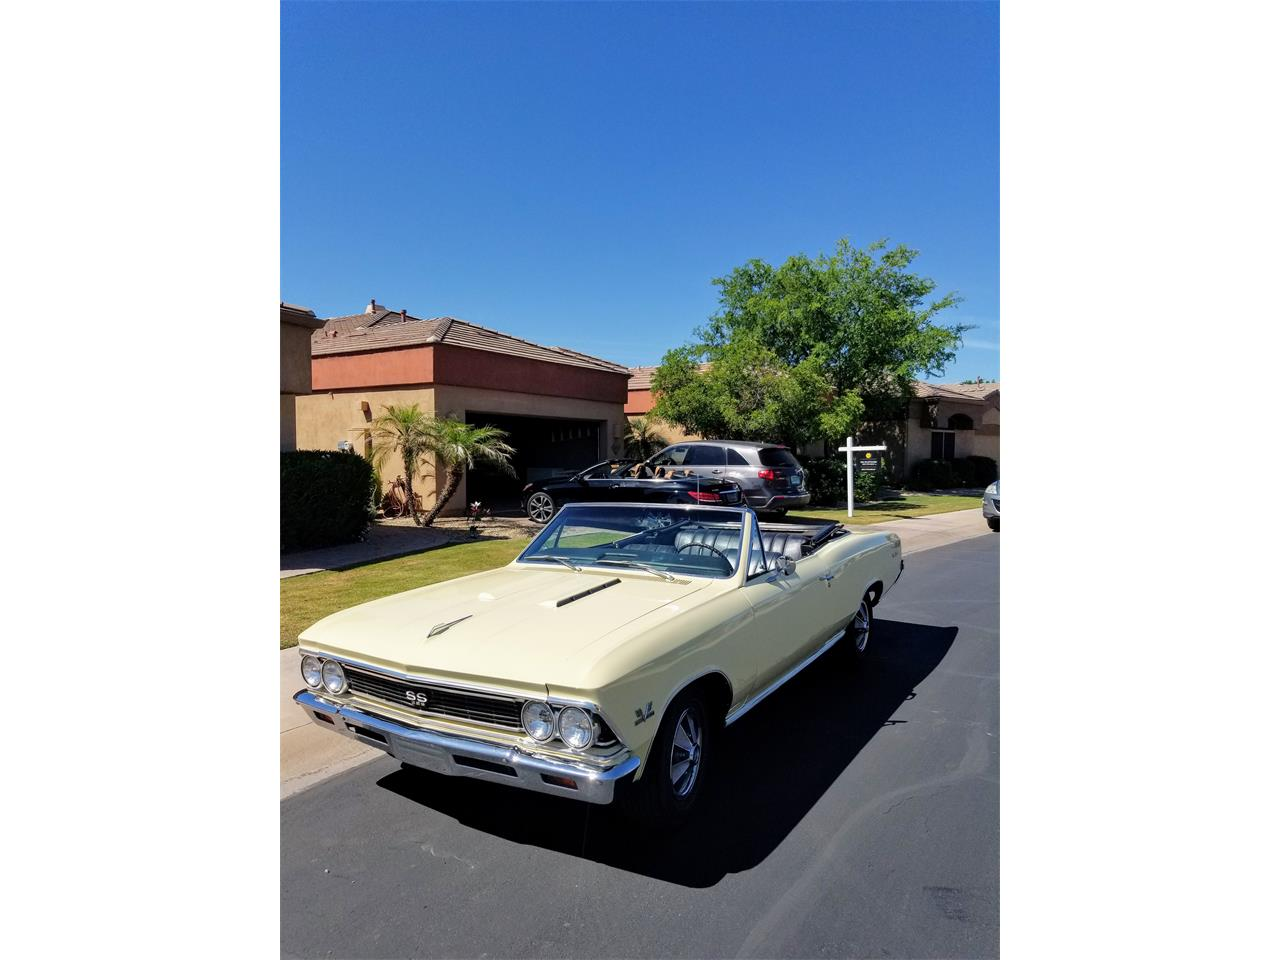 Large Picture of '66 Chevelle SS located in SCOTTSDALE Arizona Offered by a Private Seller - Q4KO